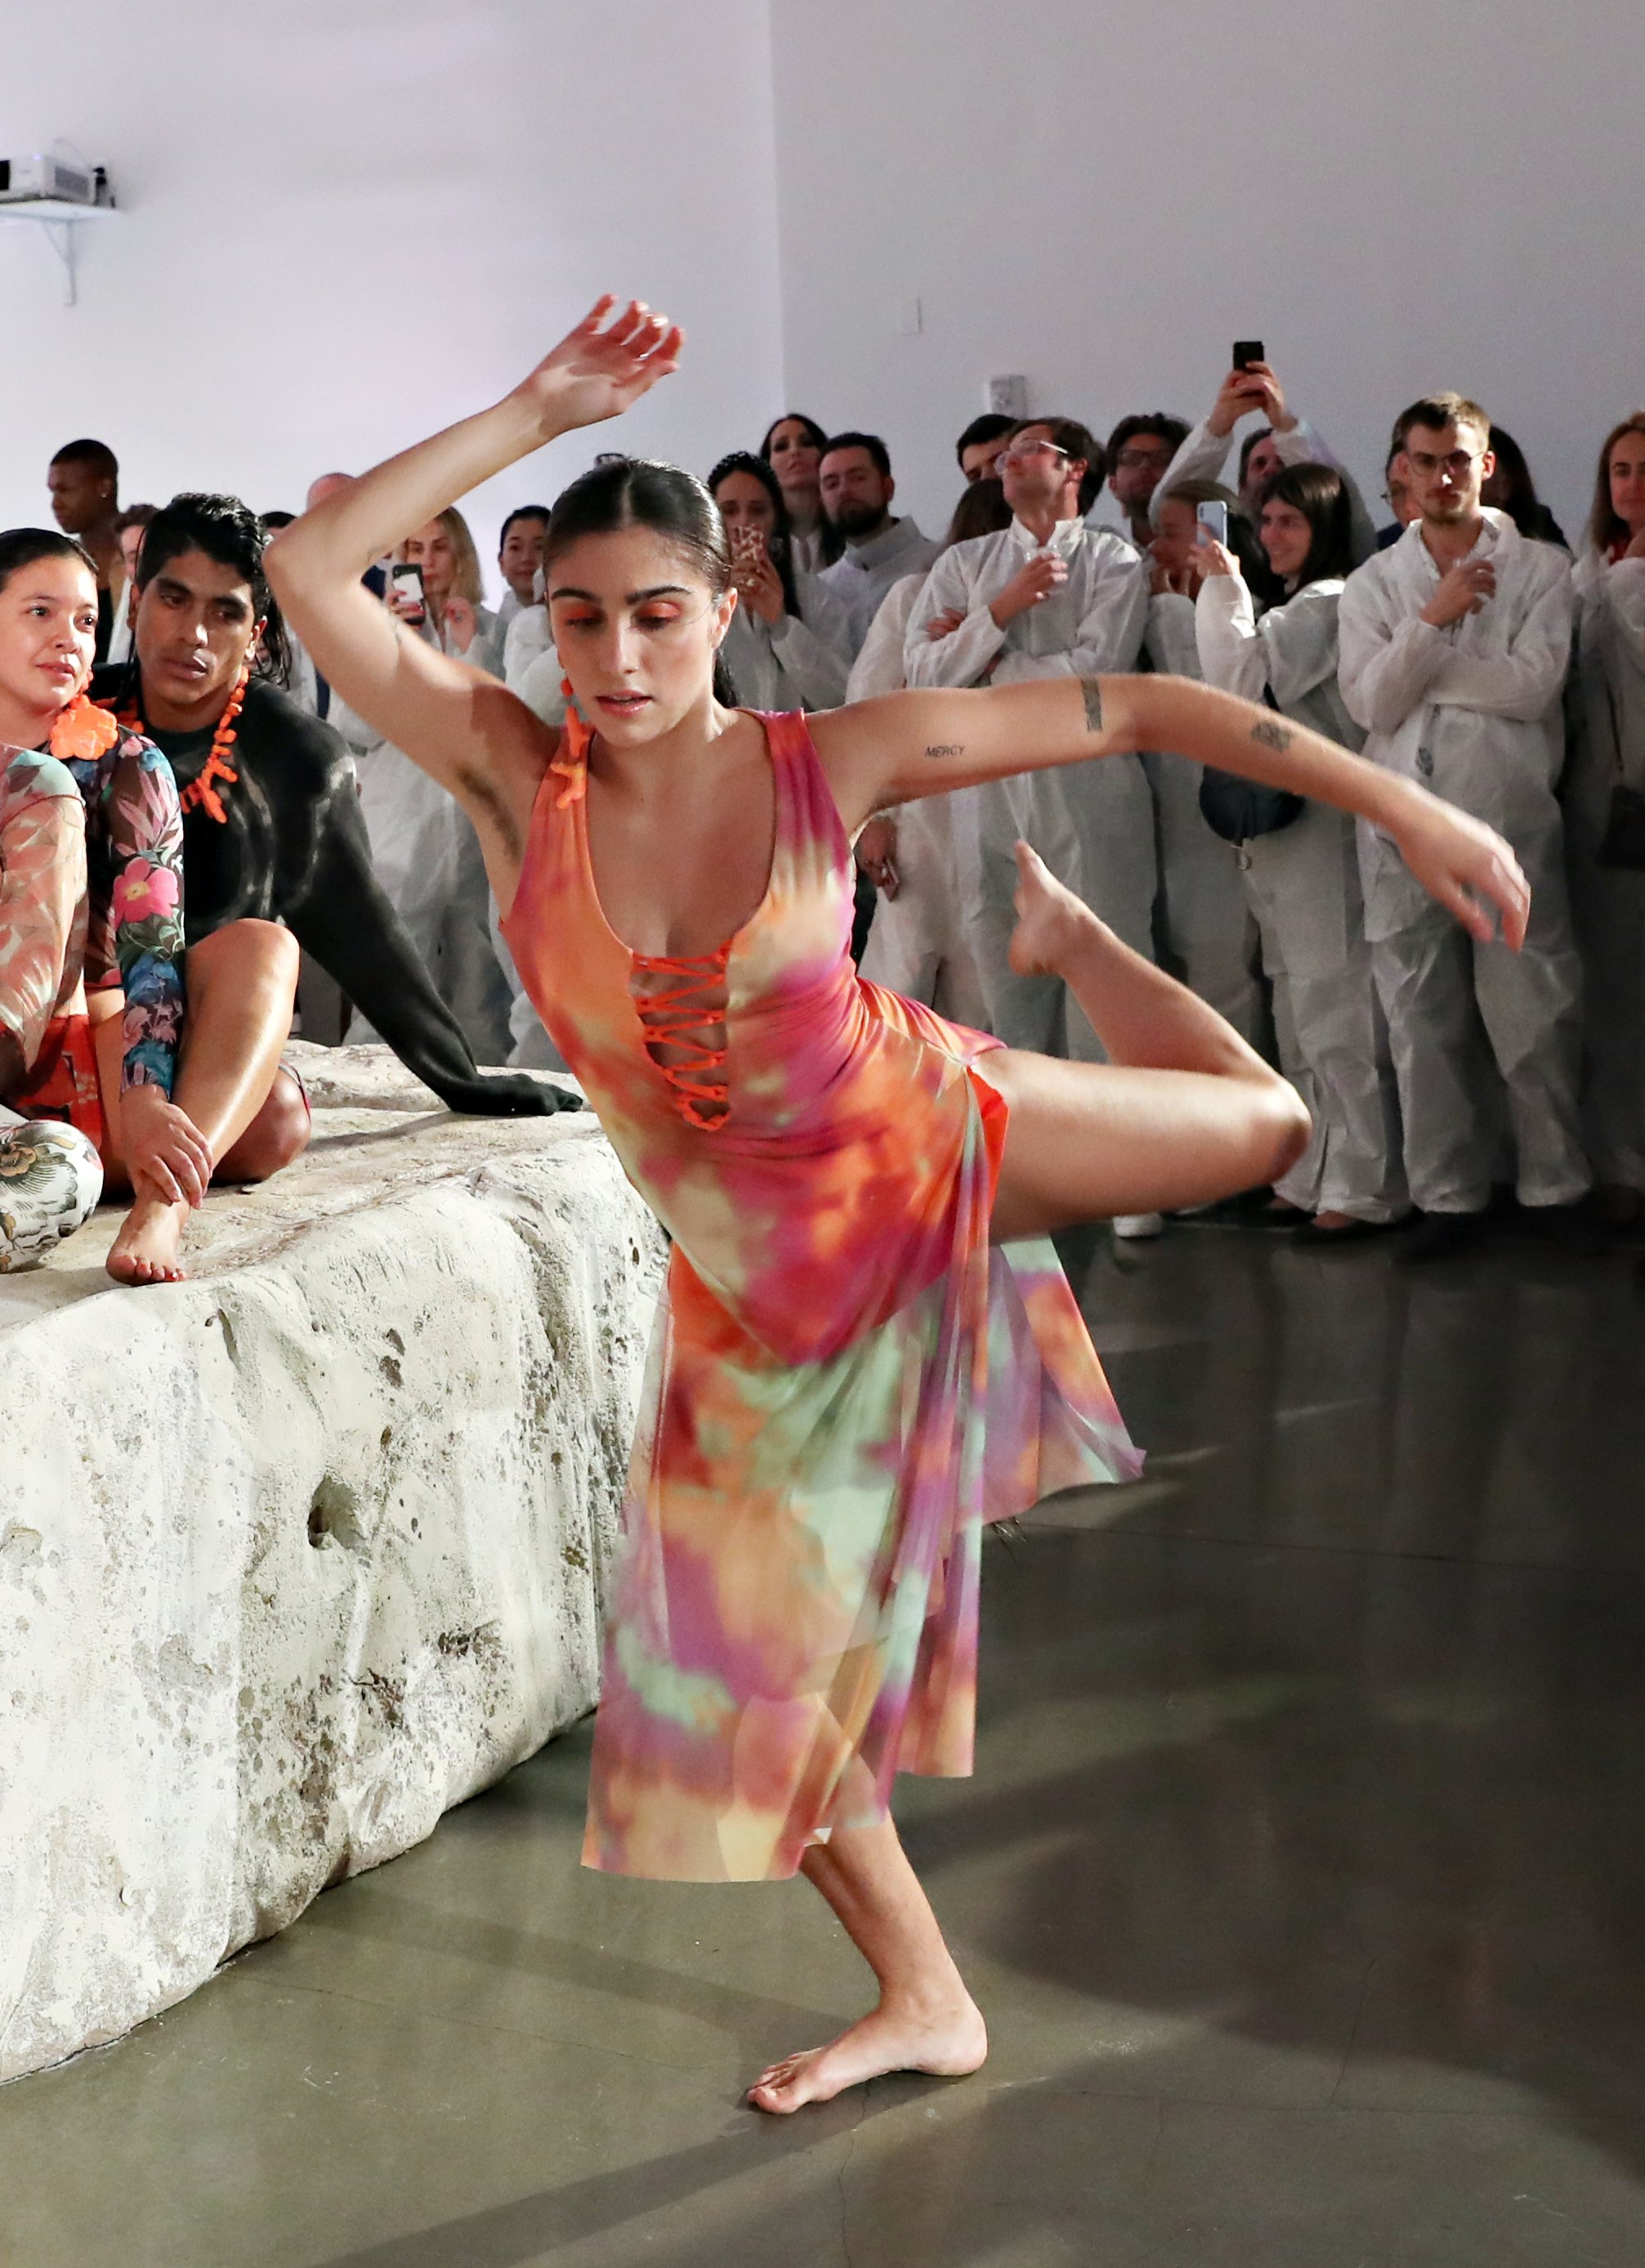 Lourdes Leon performs in the Desigual X Carlota Guerrero Show during Art Basel Miami 2019 at The Temple House on December 6, 2019| Source: Getty Images)